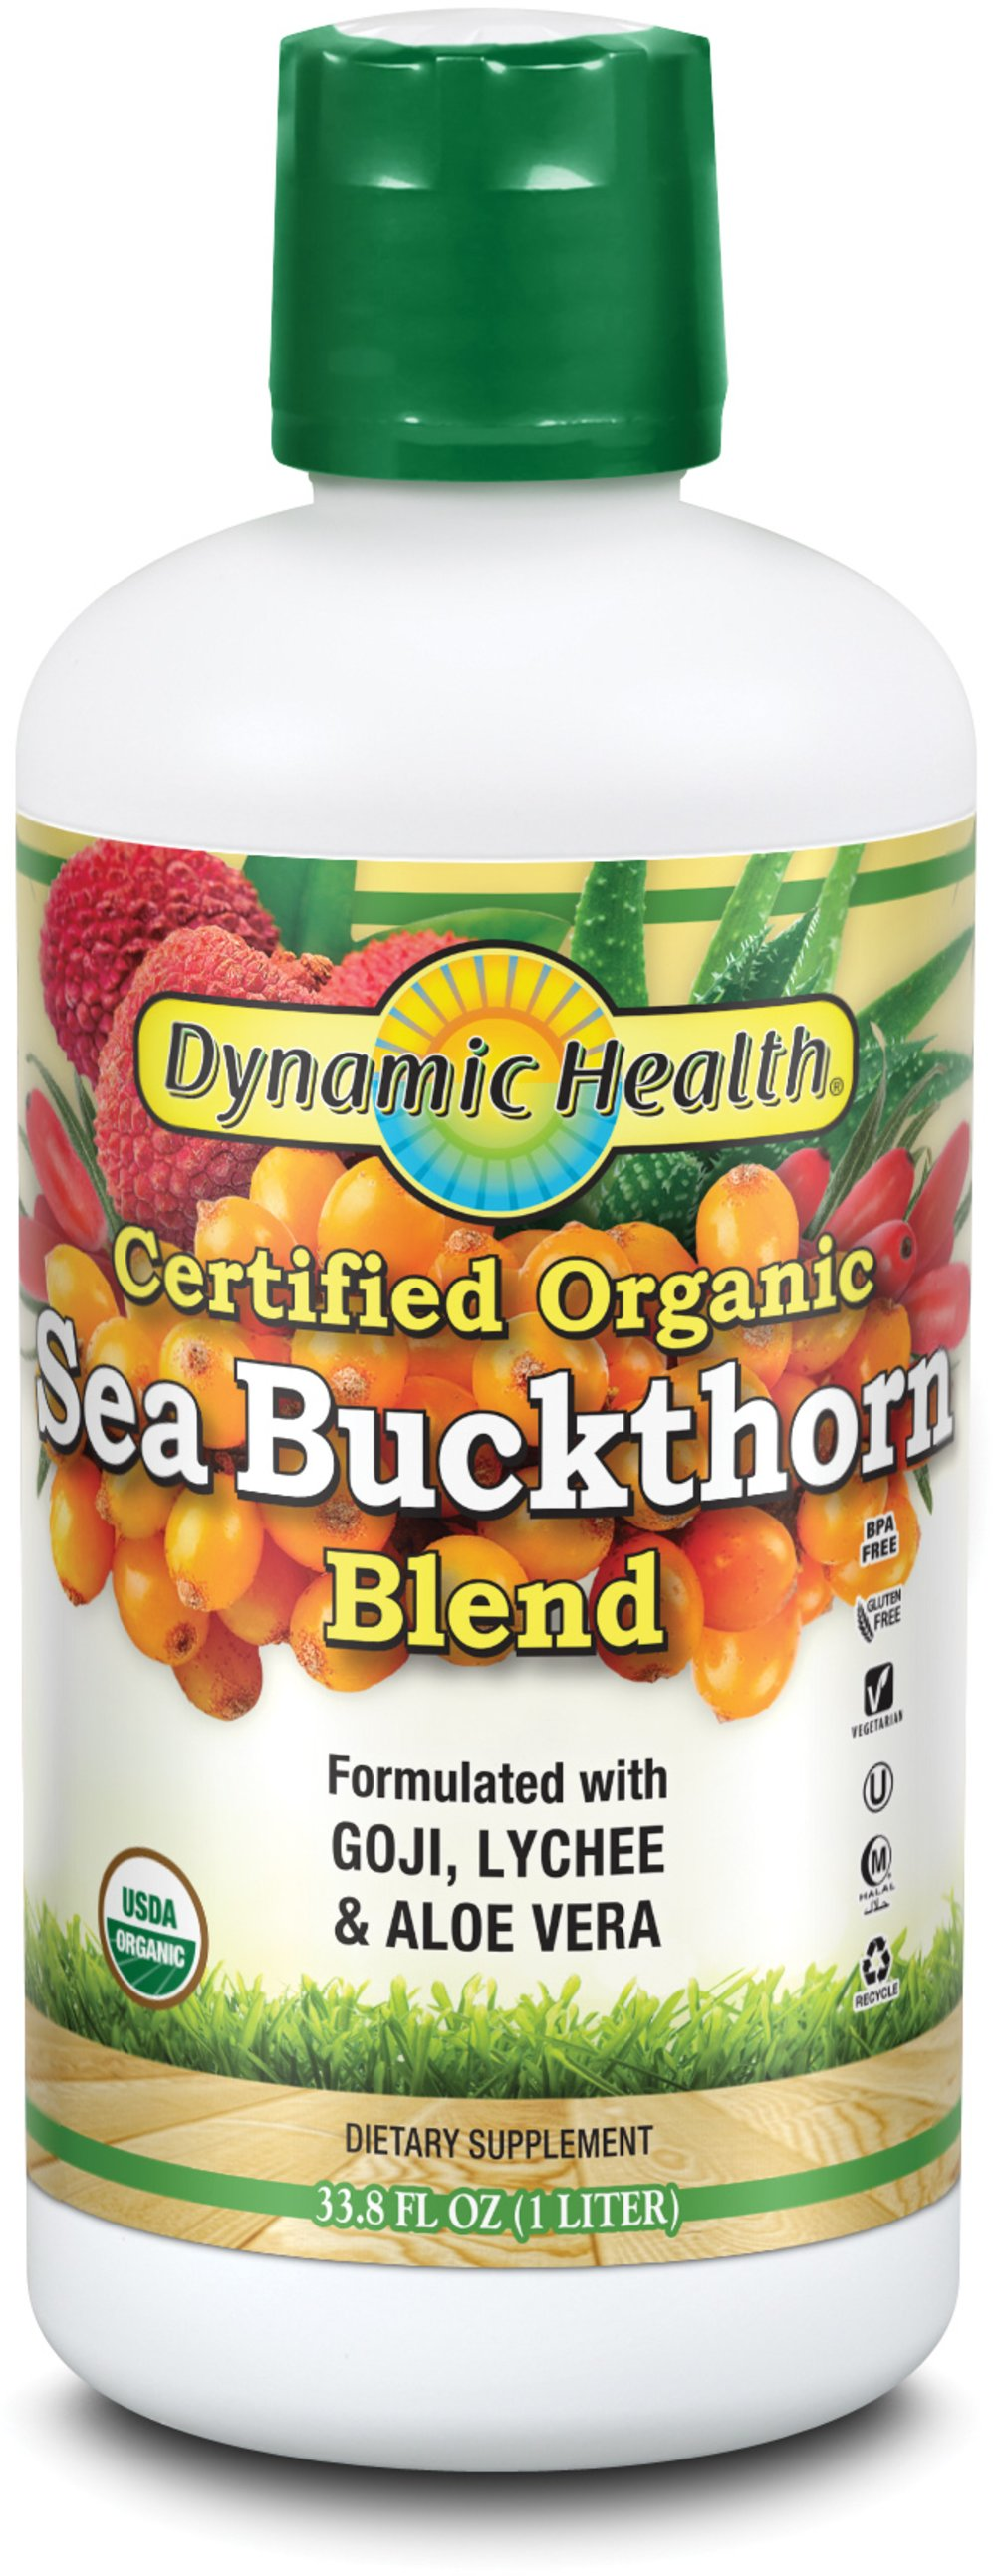 Organic Sea Buckthorn Juice Organic Certified Seabuckthorn fortified with Goji, Lychee+ Aloe Vera. The Seabuckthorn Berry flourishes in the mountainous and colder regions of China. <p></p><p>The Seabuckthorn berry is used traditionally to help promote healthy living. **</p><p>Manufactured by Dynamic Health Laboratories, Inc.</p> 32 oz Liquid  $14.99